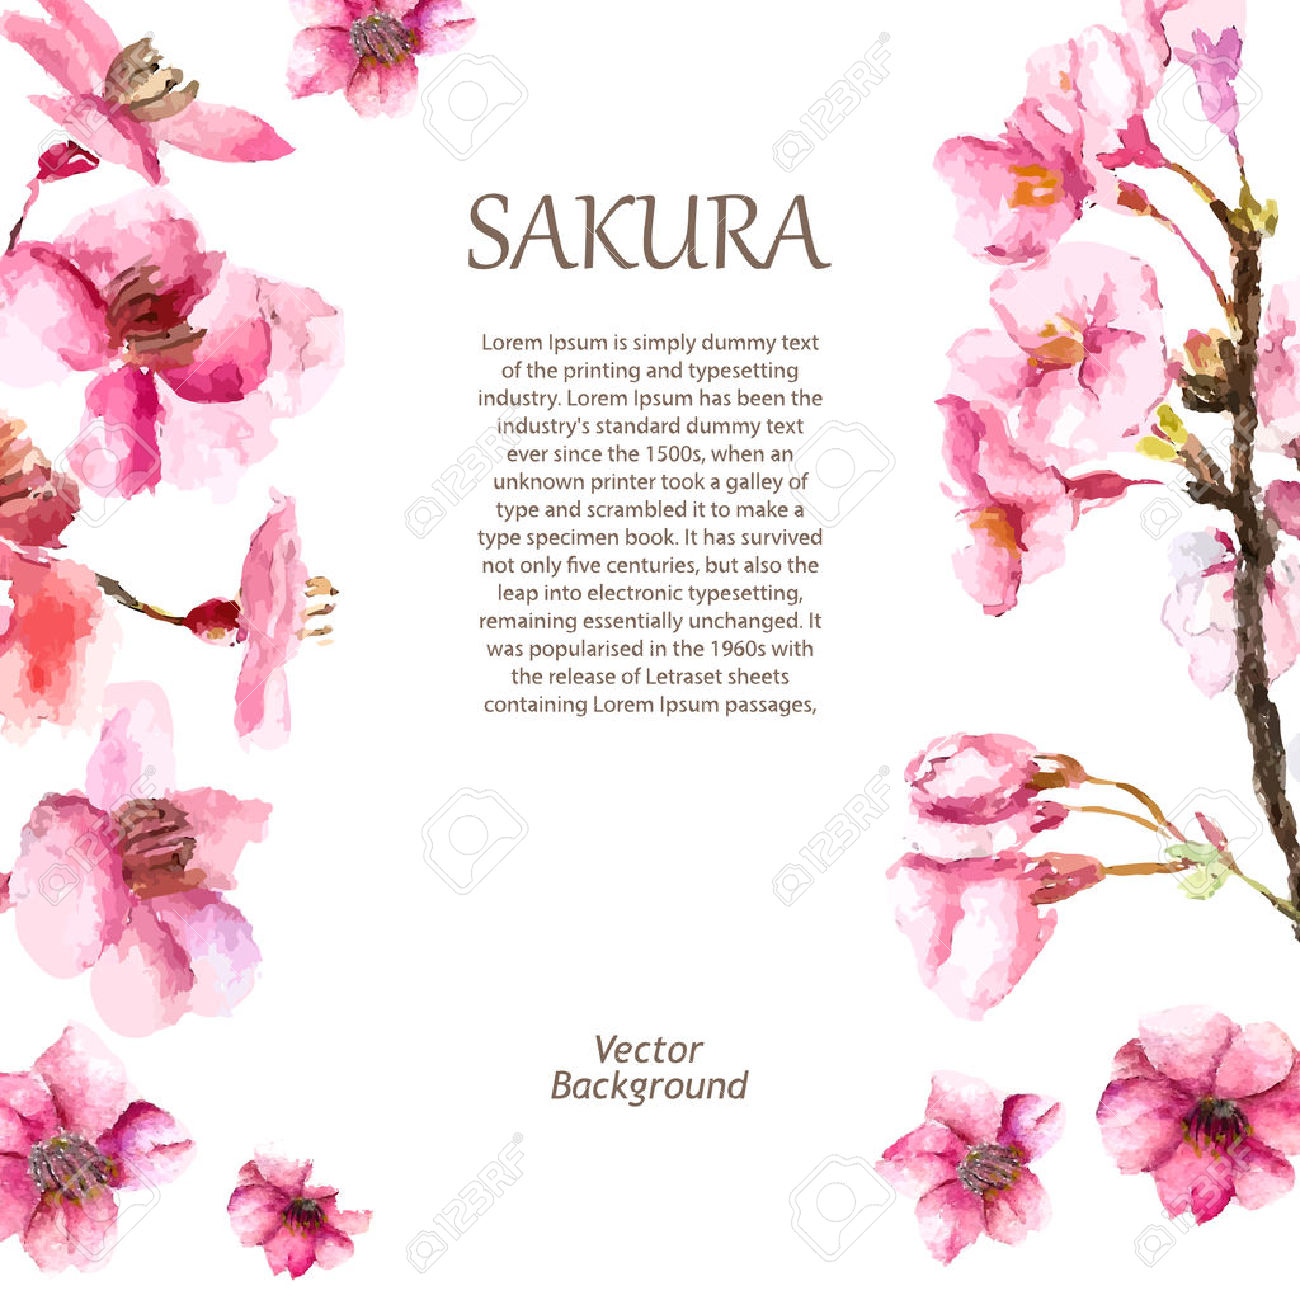 sakura fleur de cerisier du japon et des fleurs. Black Bedroom Furniture Sets. Home Design Ideas